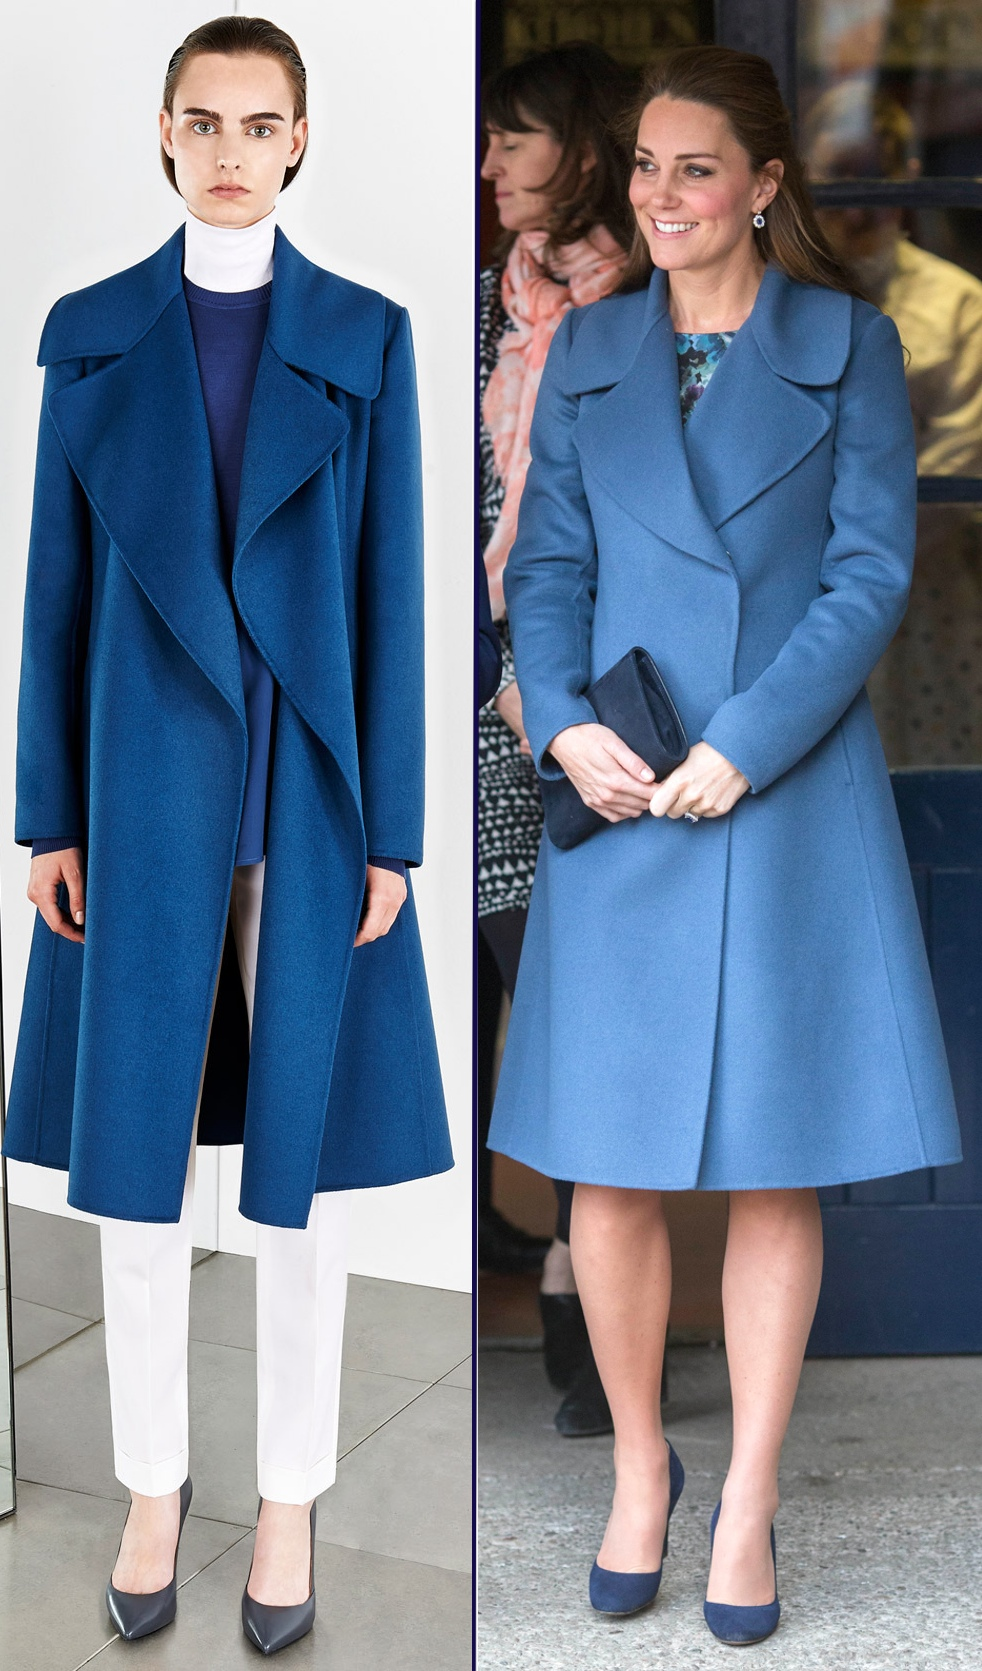 Kate Max Mara SportMax Sport Max Blue Coat Emma Bridgewater Side by Side i-Images